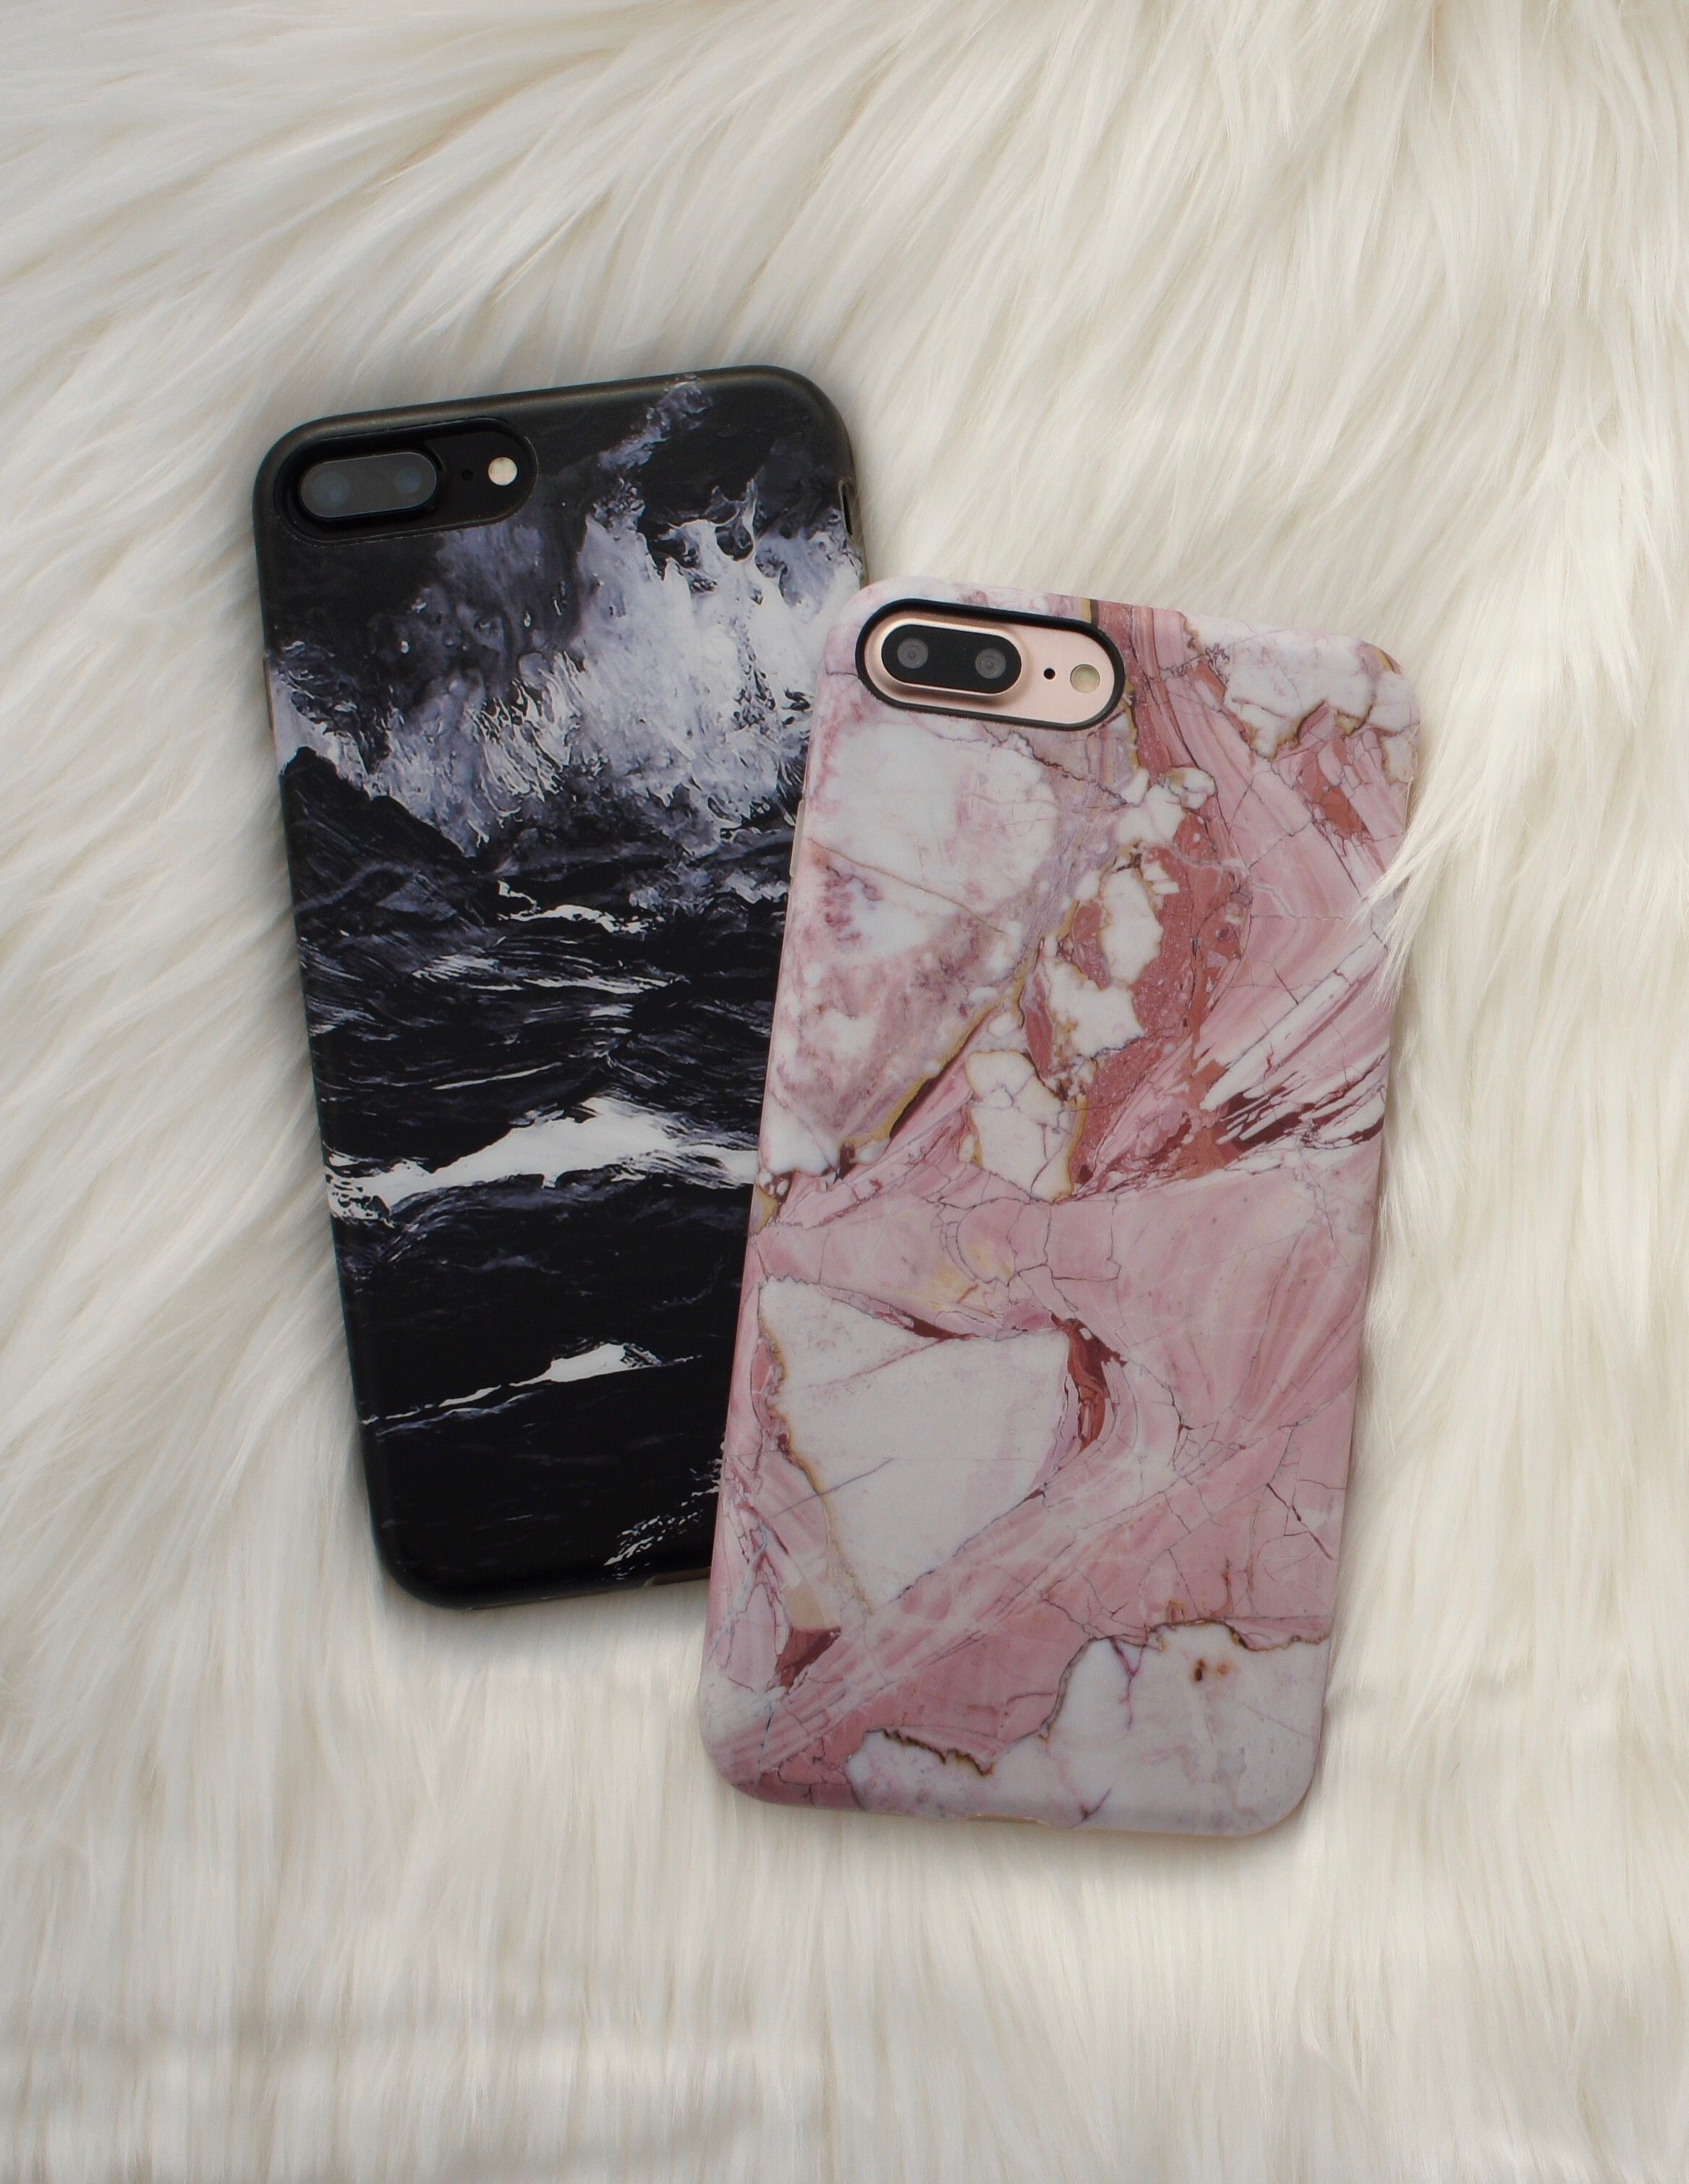 986c916c2b Black + Rose Marble Case Available for iPhone 7 & iPhone 7 Plus from  Elemental Cases